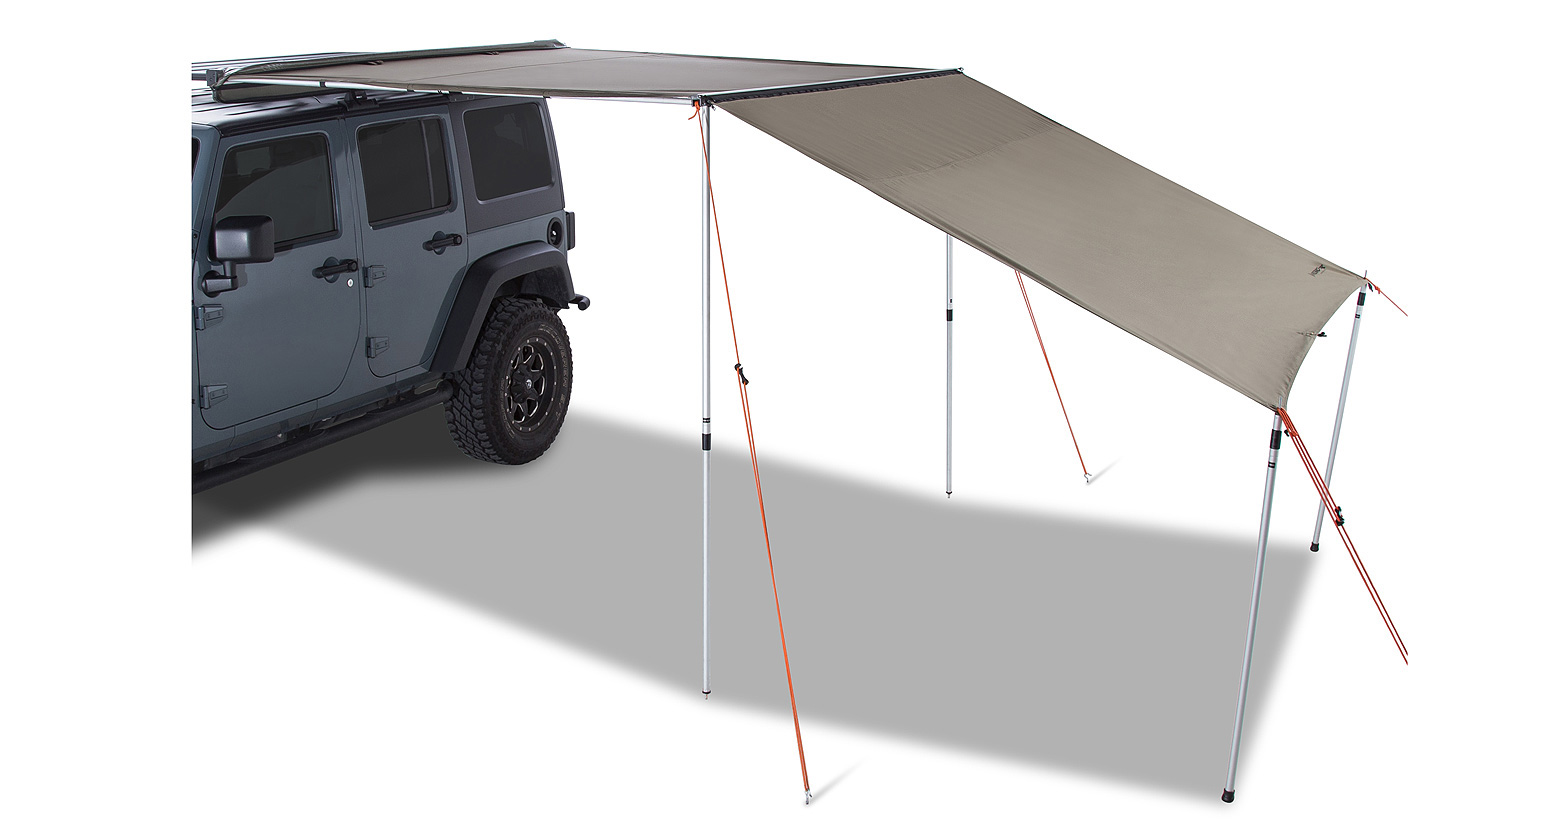 Batwing Foxwing Sunseeker 2 5m Awning Extension By Oztent